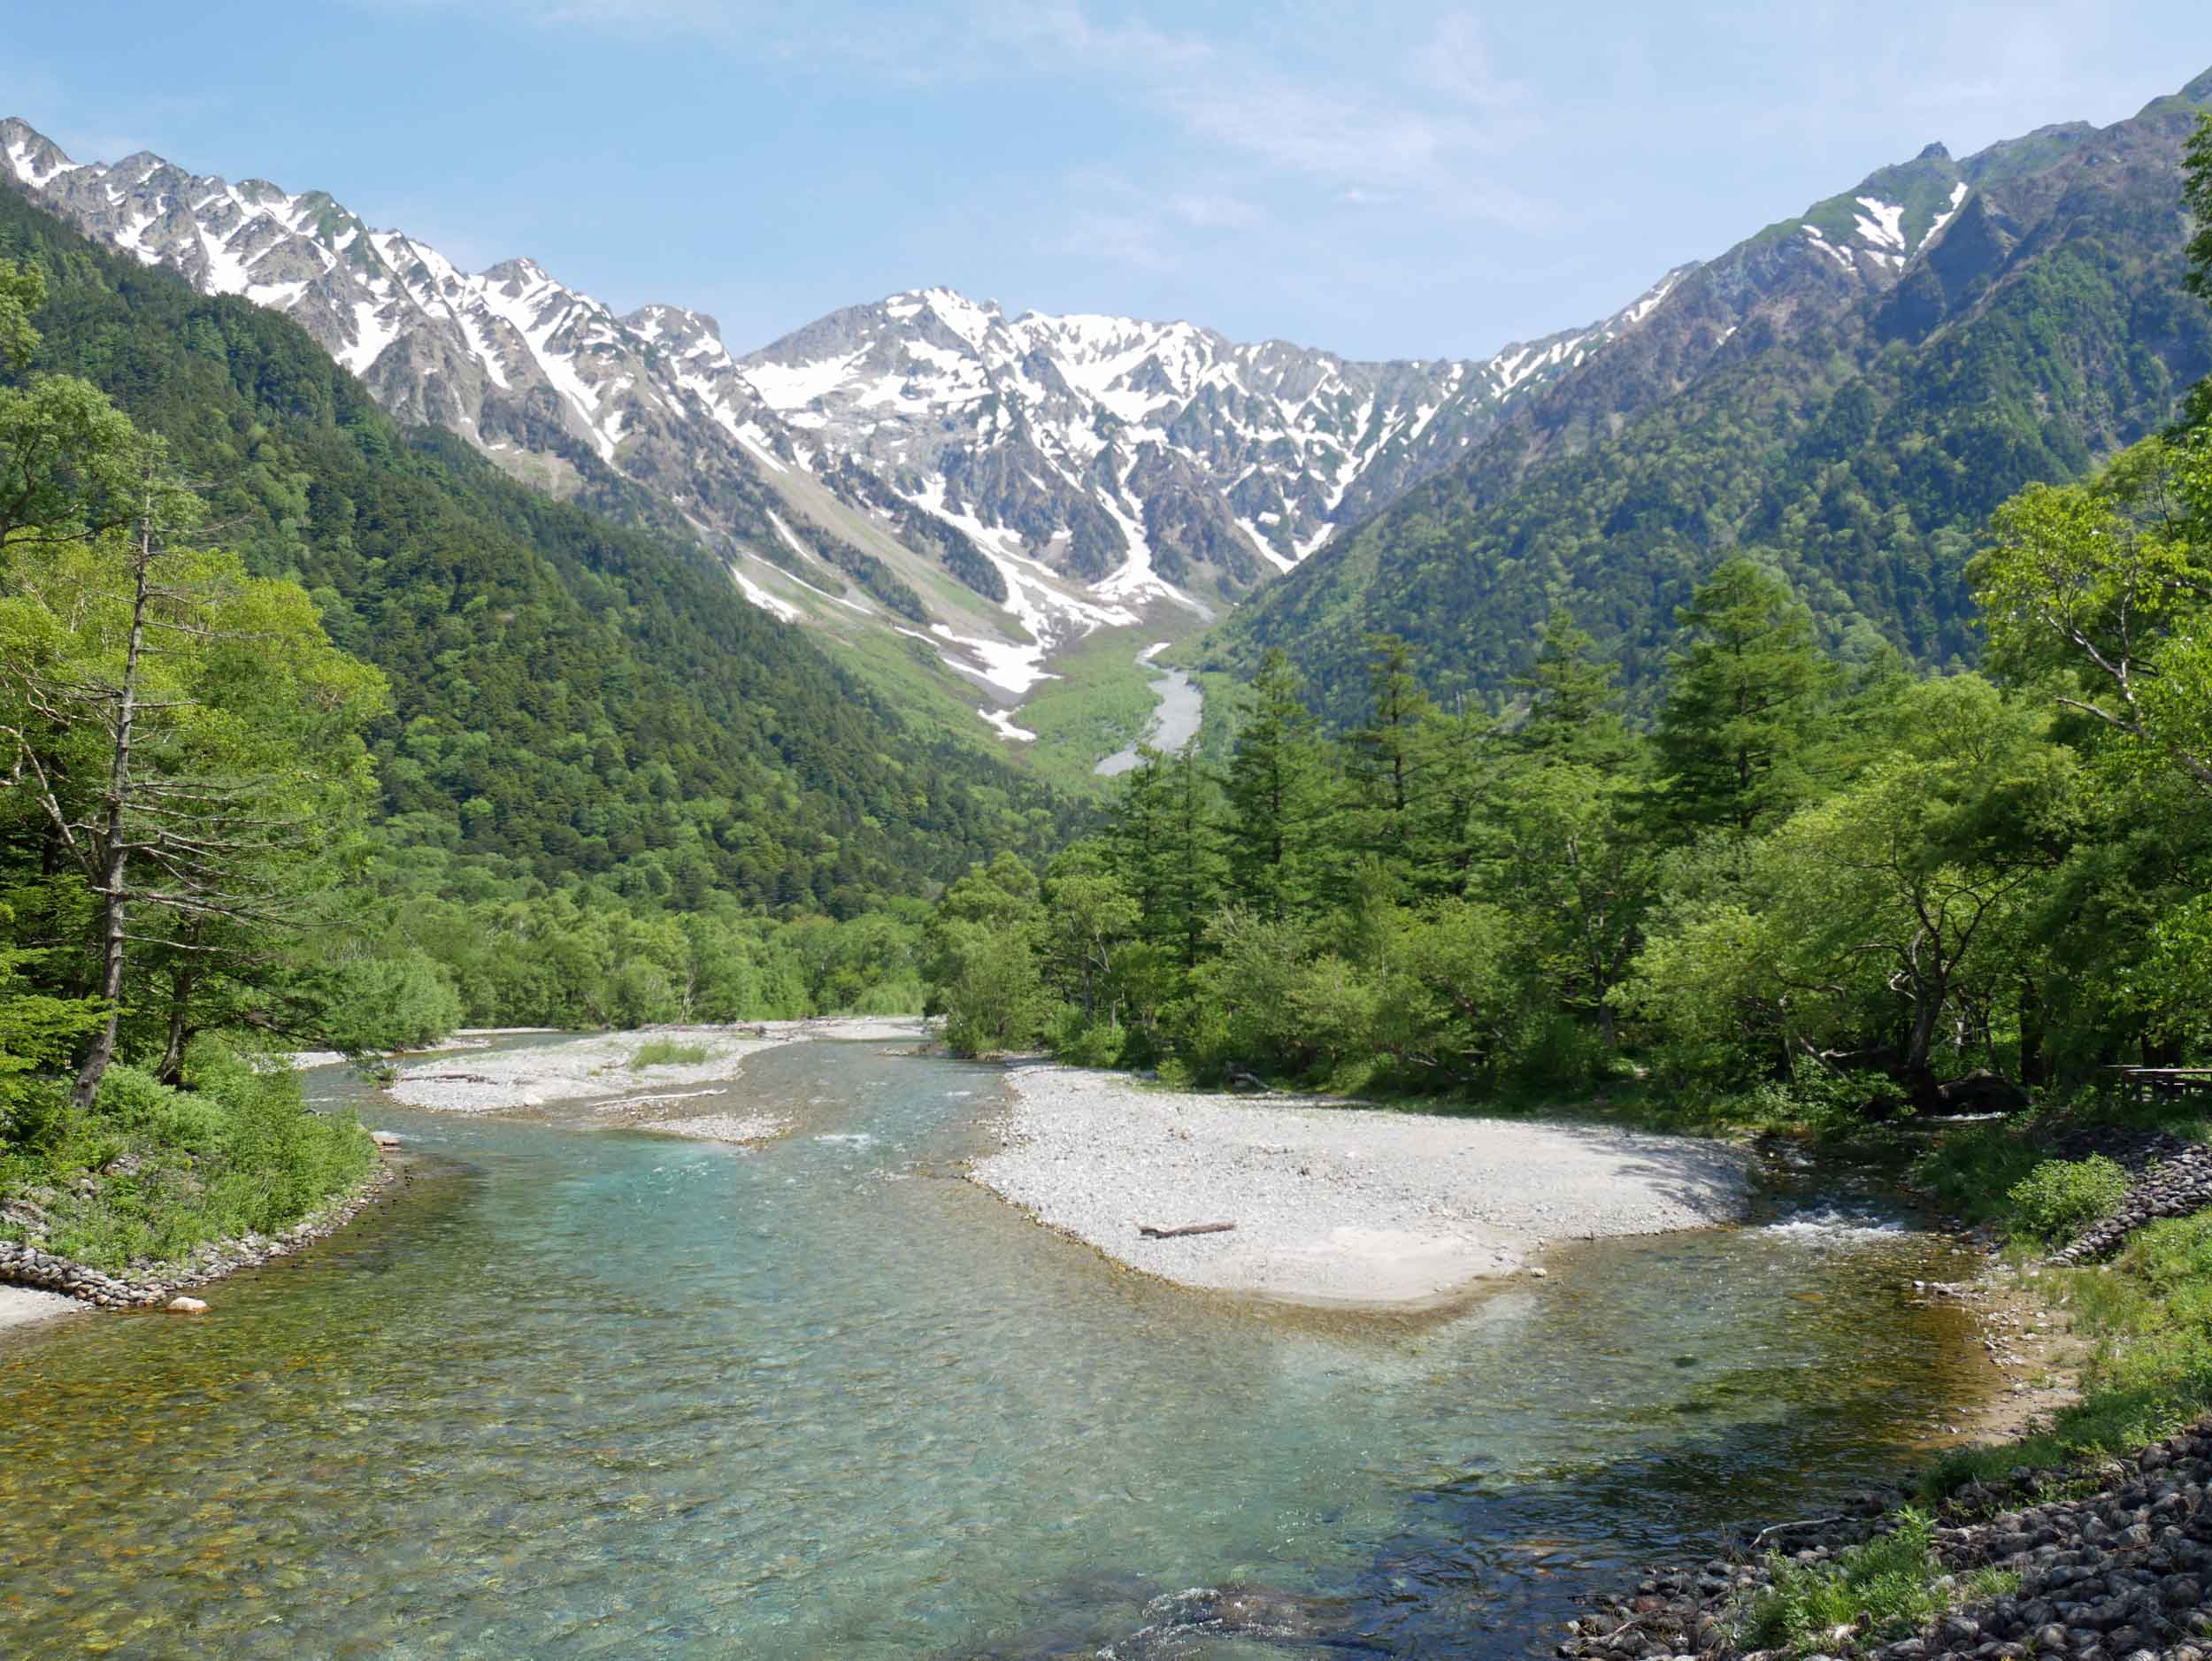 We left Takayama early the next morning for Kamikochi, which is enveloped by the majestic Hida mountain range of the Japanese Alps.